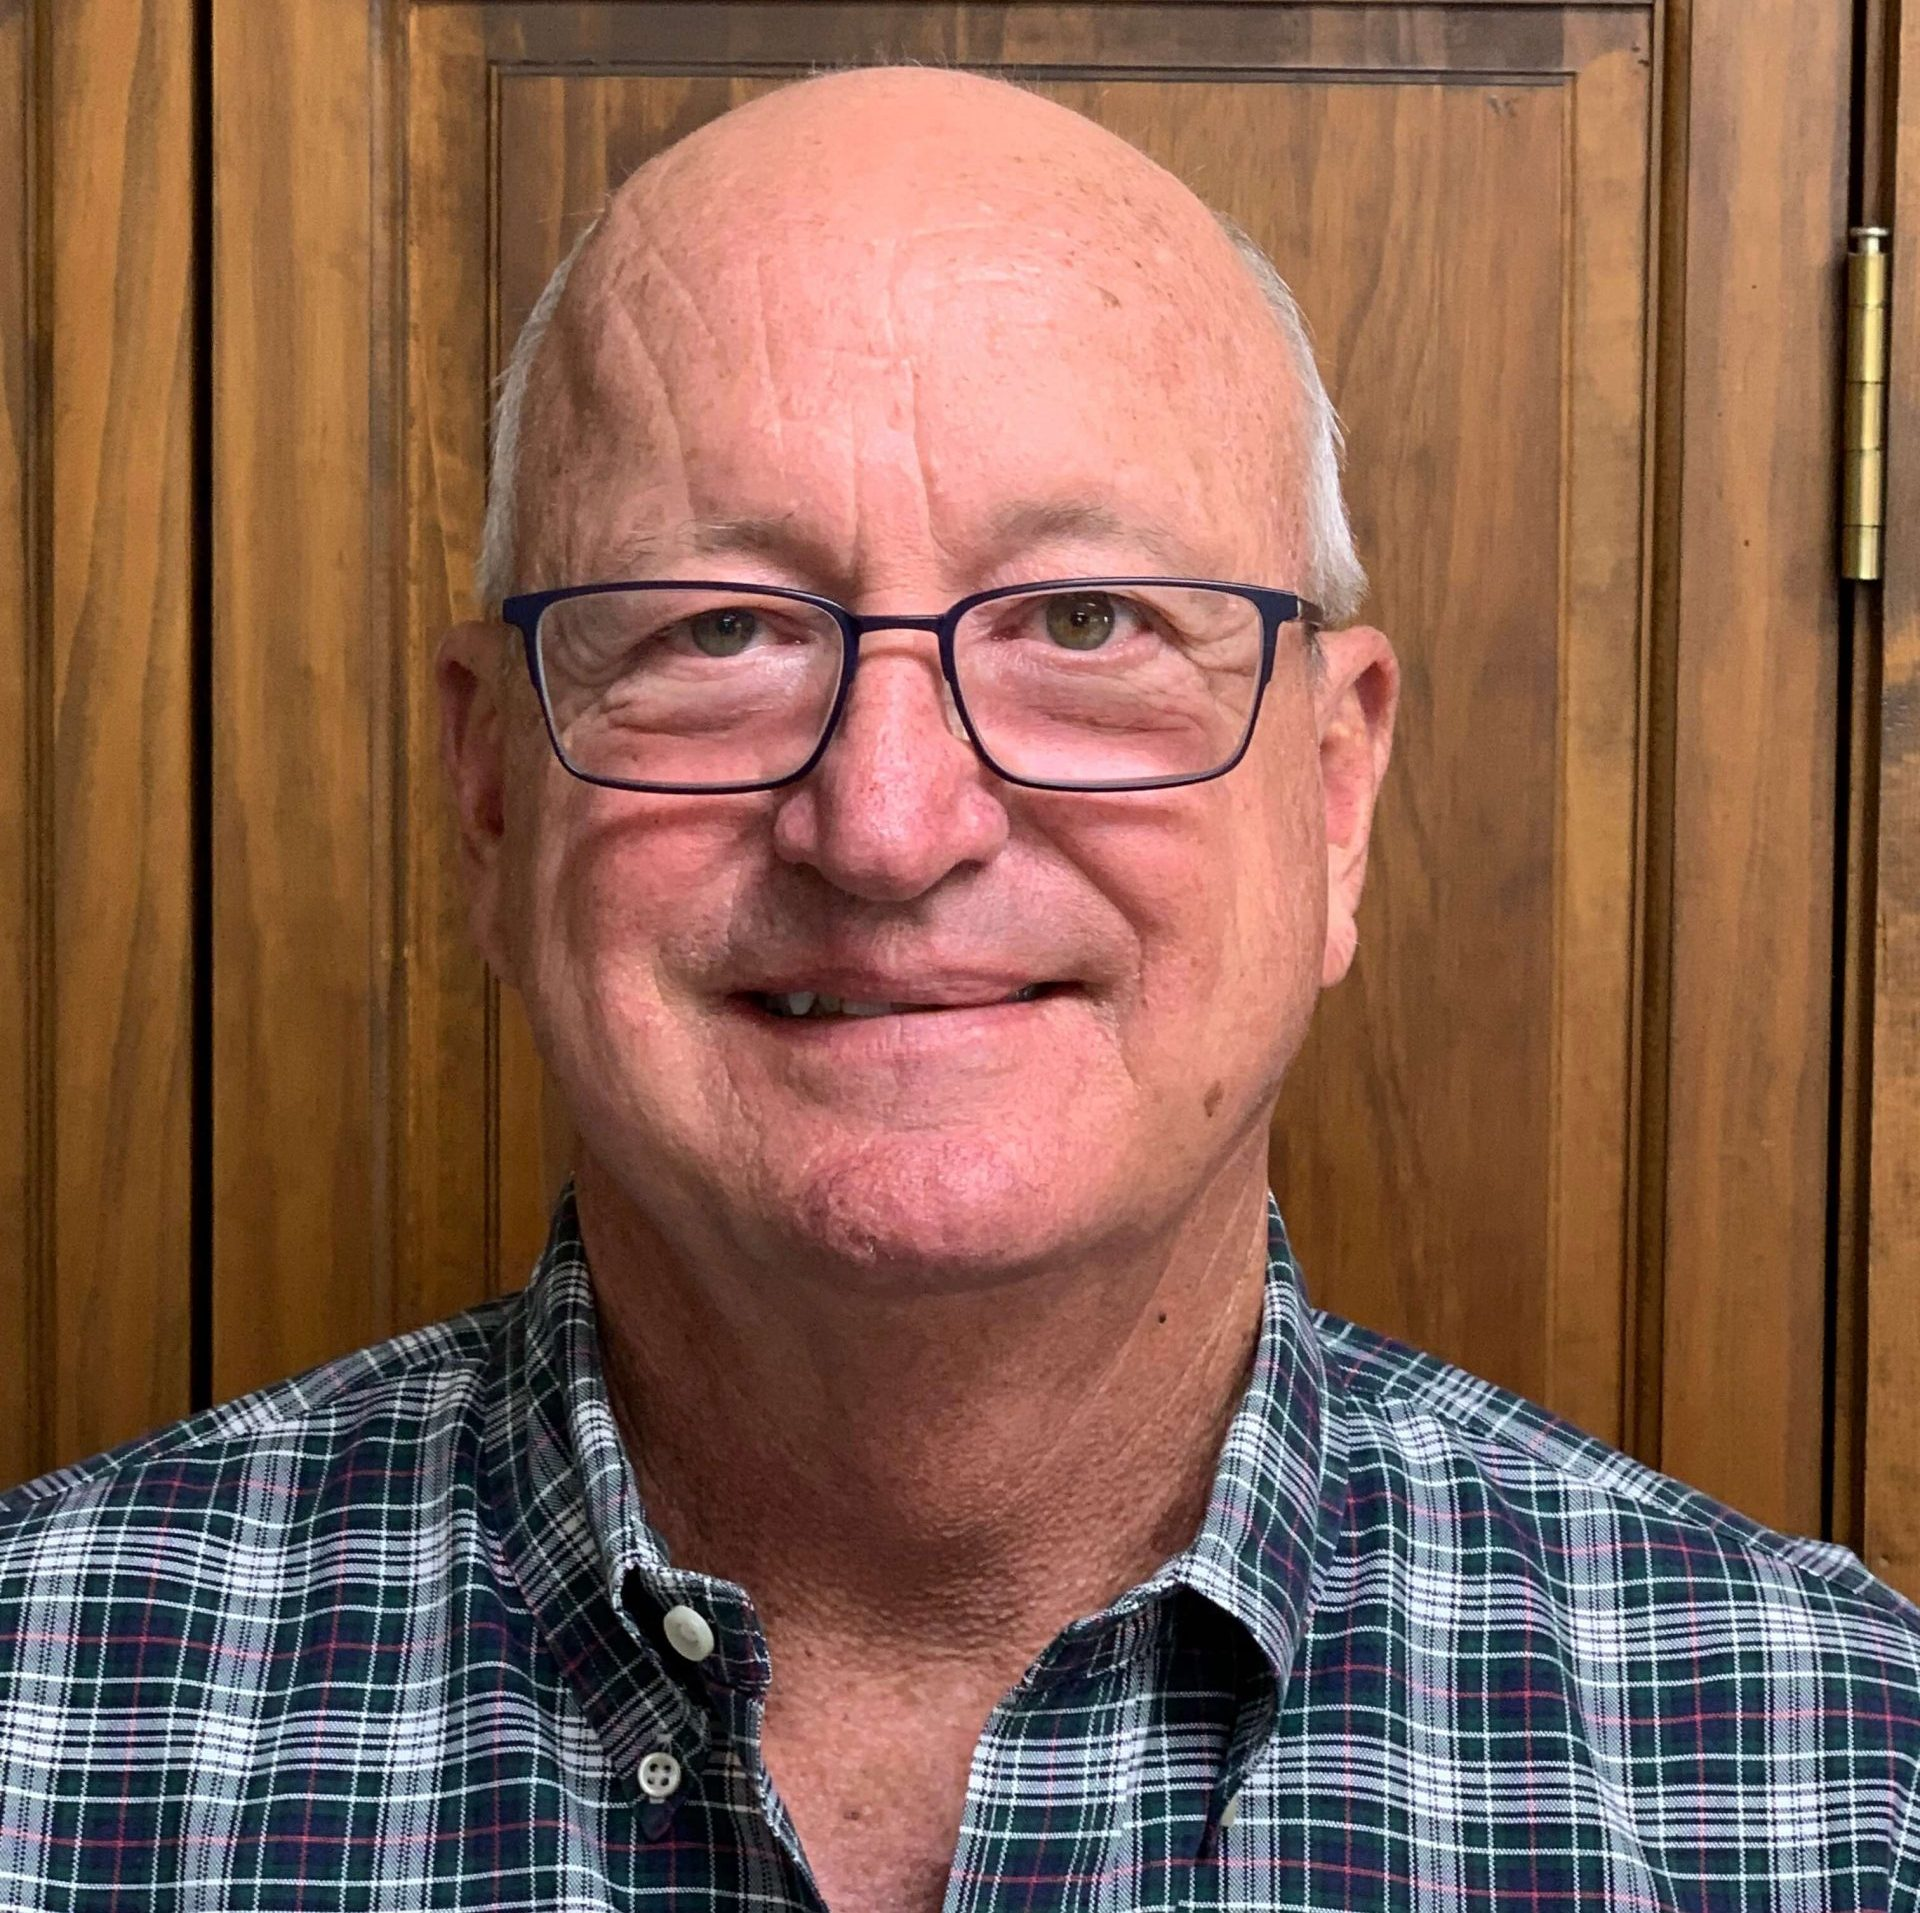 Michael Borchers is the Chairman of the Board of Directors at Pathways Youth & Family Services.